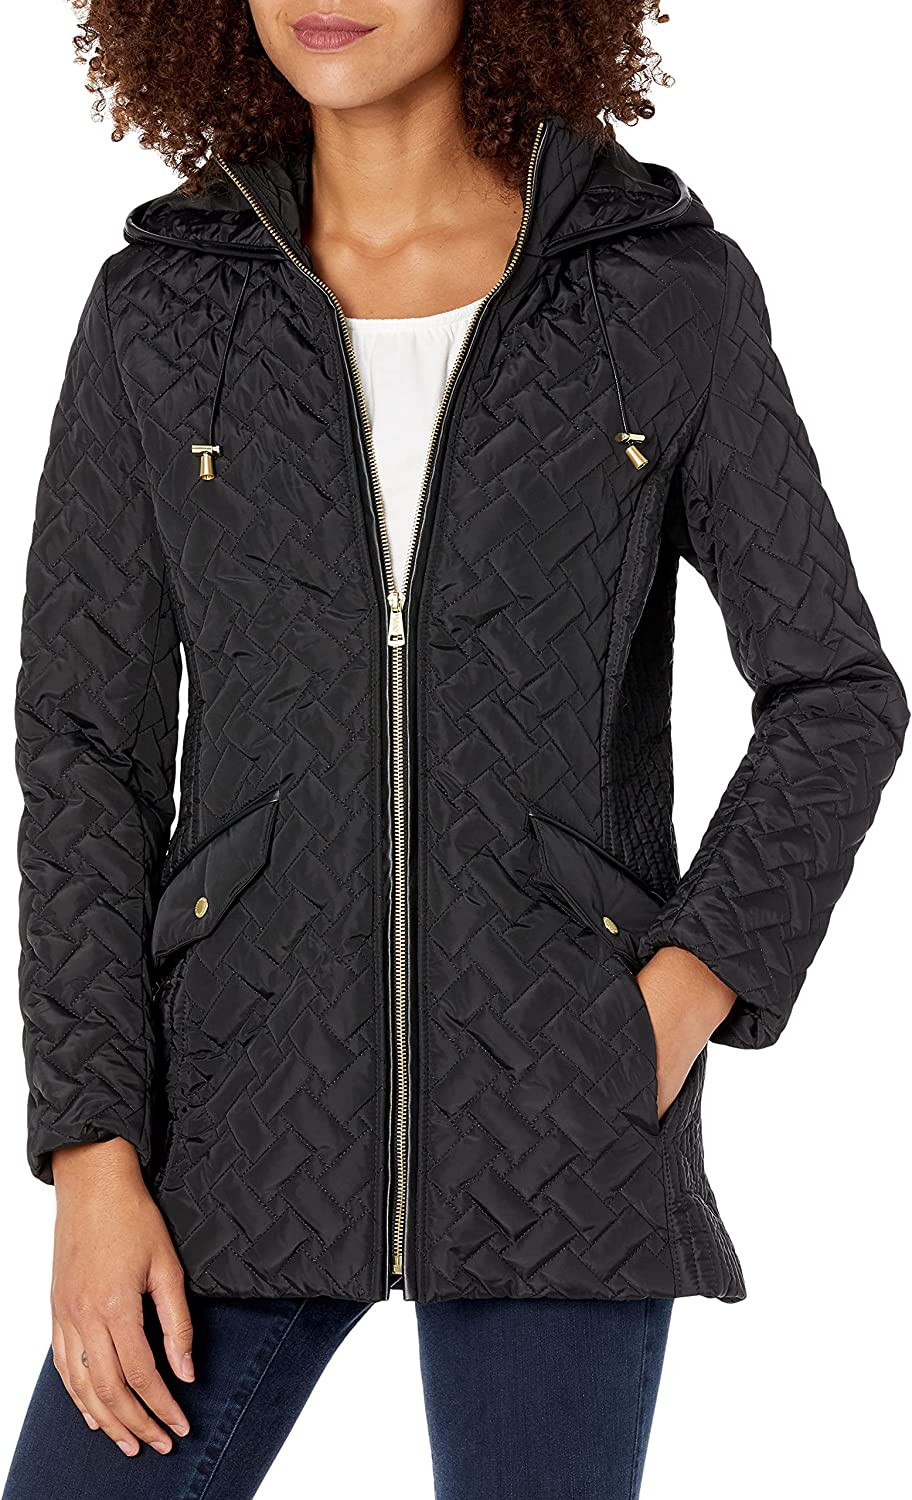 Cole Haan Women's Free shipping anywhere in the nation Jacket Quilted Atlanta Mall Barn